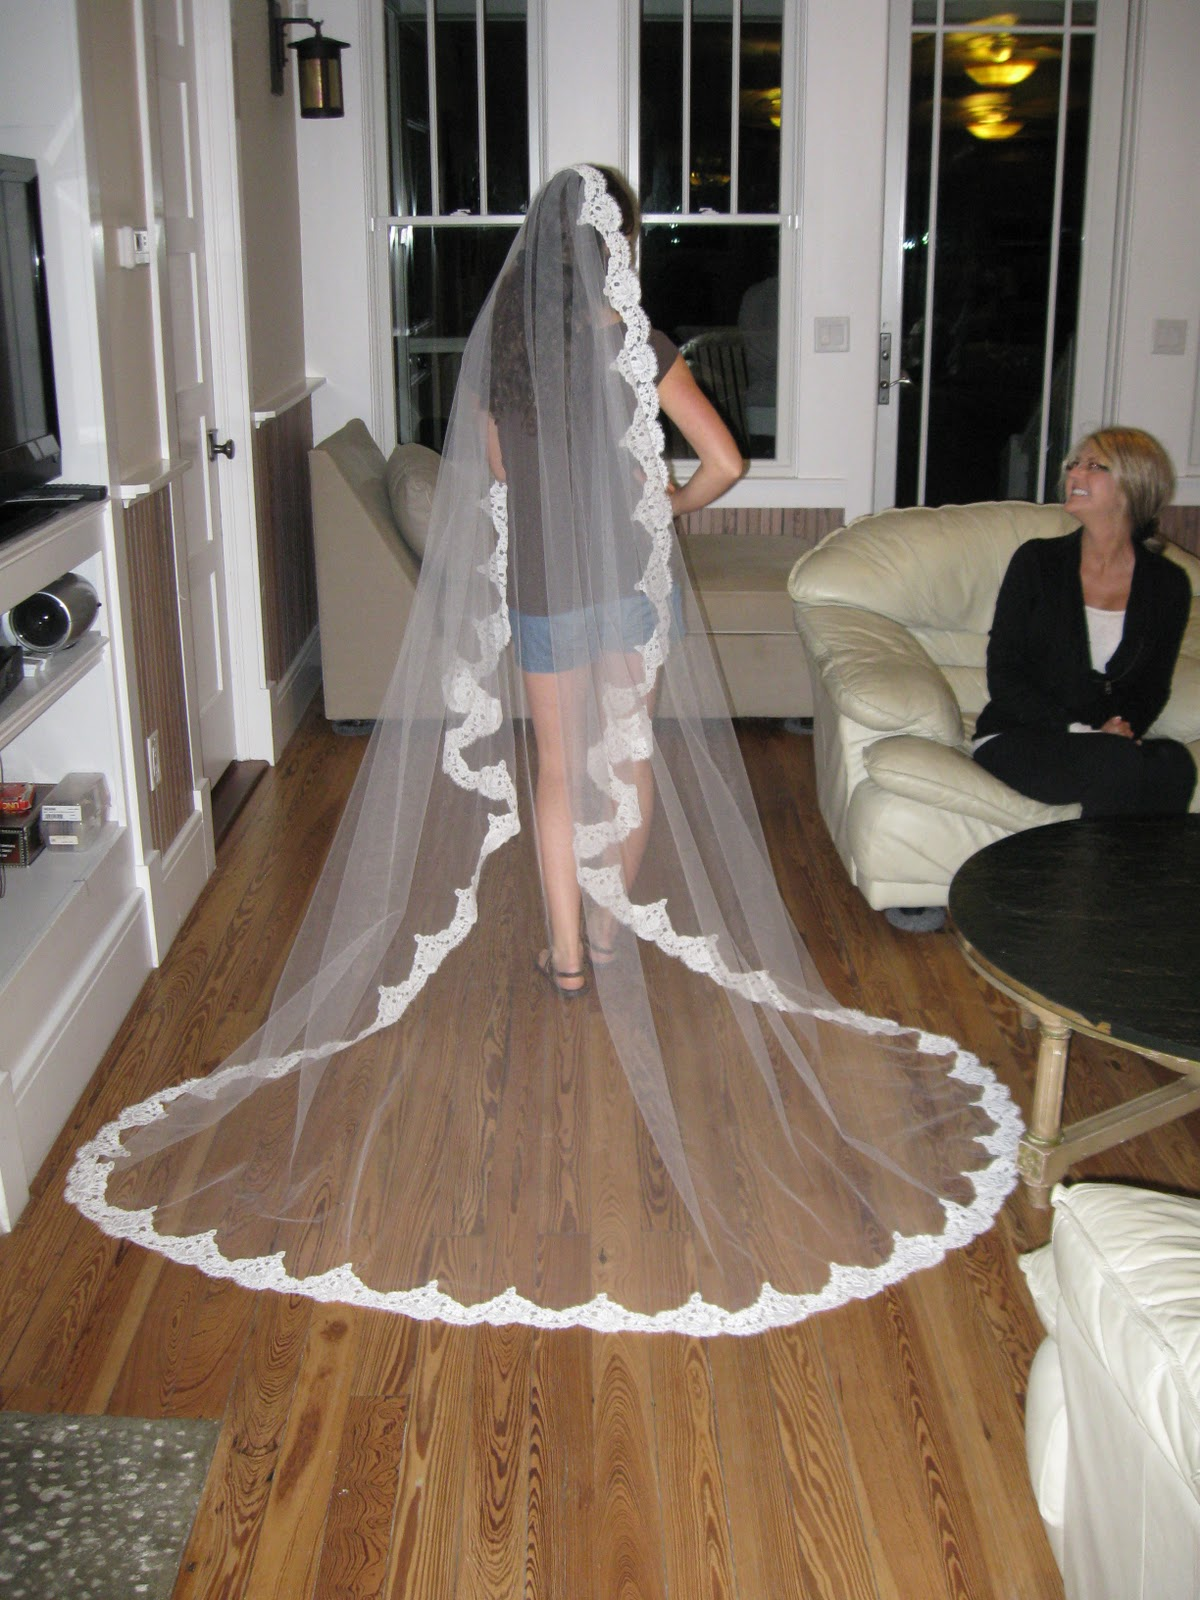 Tulle We Had Created A Masterpiecefor 85 DOLLARS Including Lace Combs And Clear Thread Seven Hours Of Sisterly Love Bonding Time